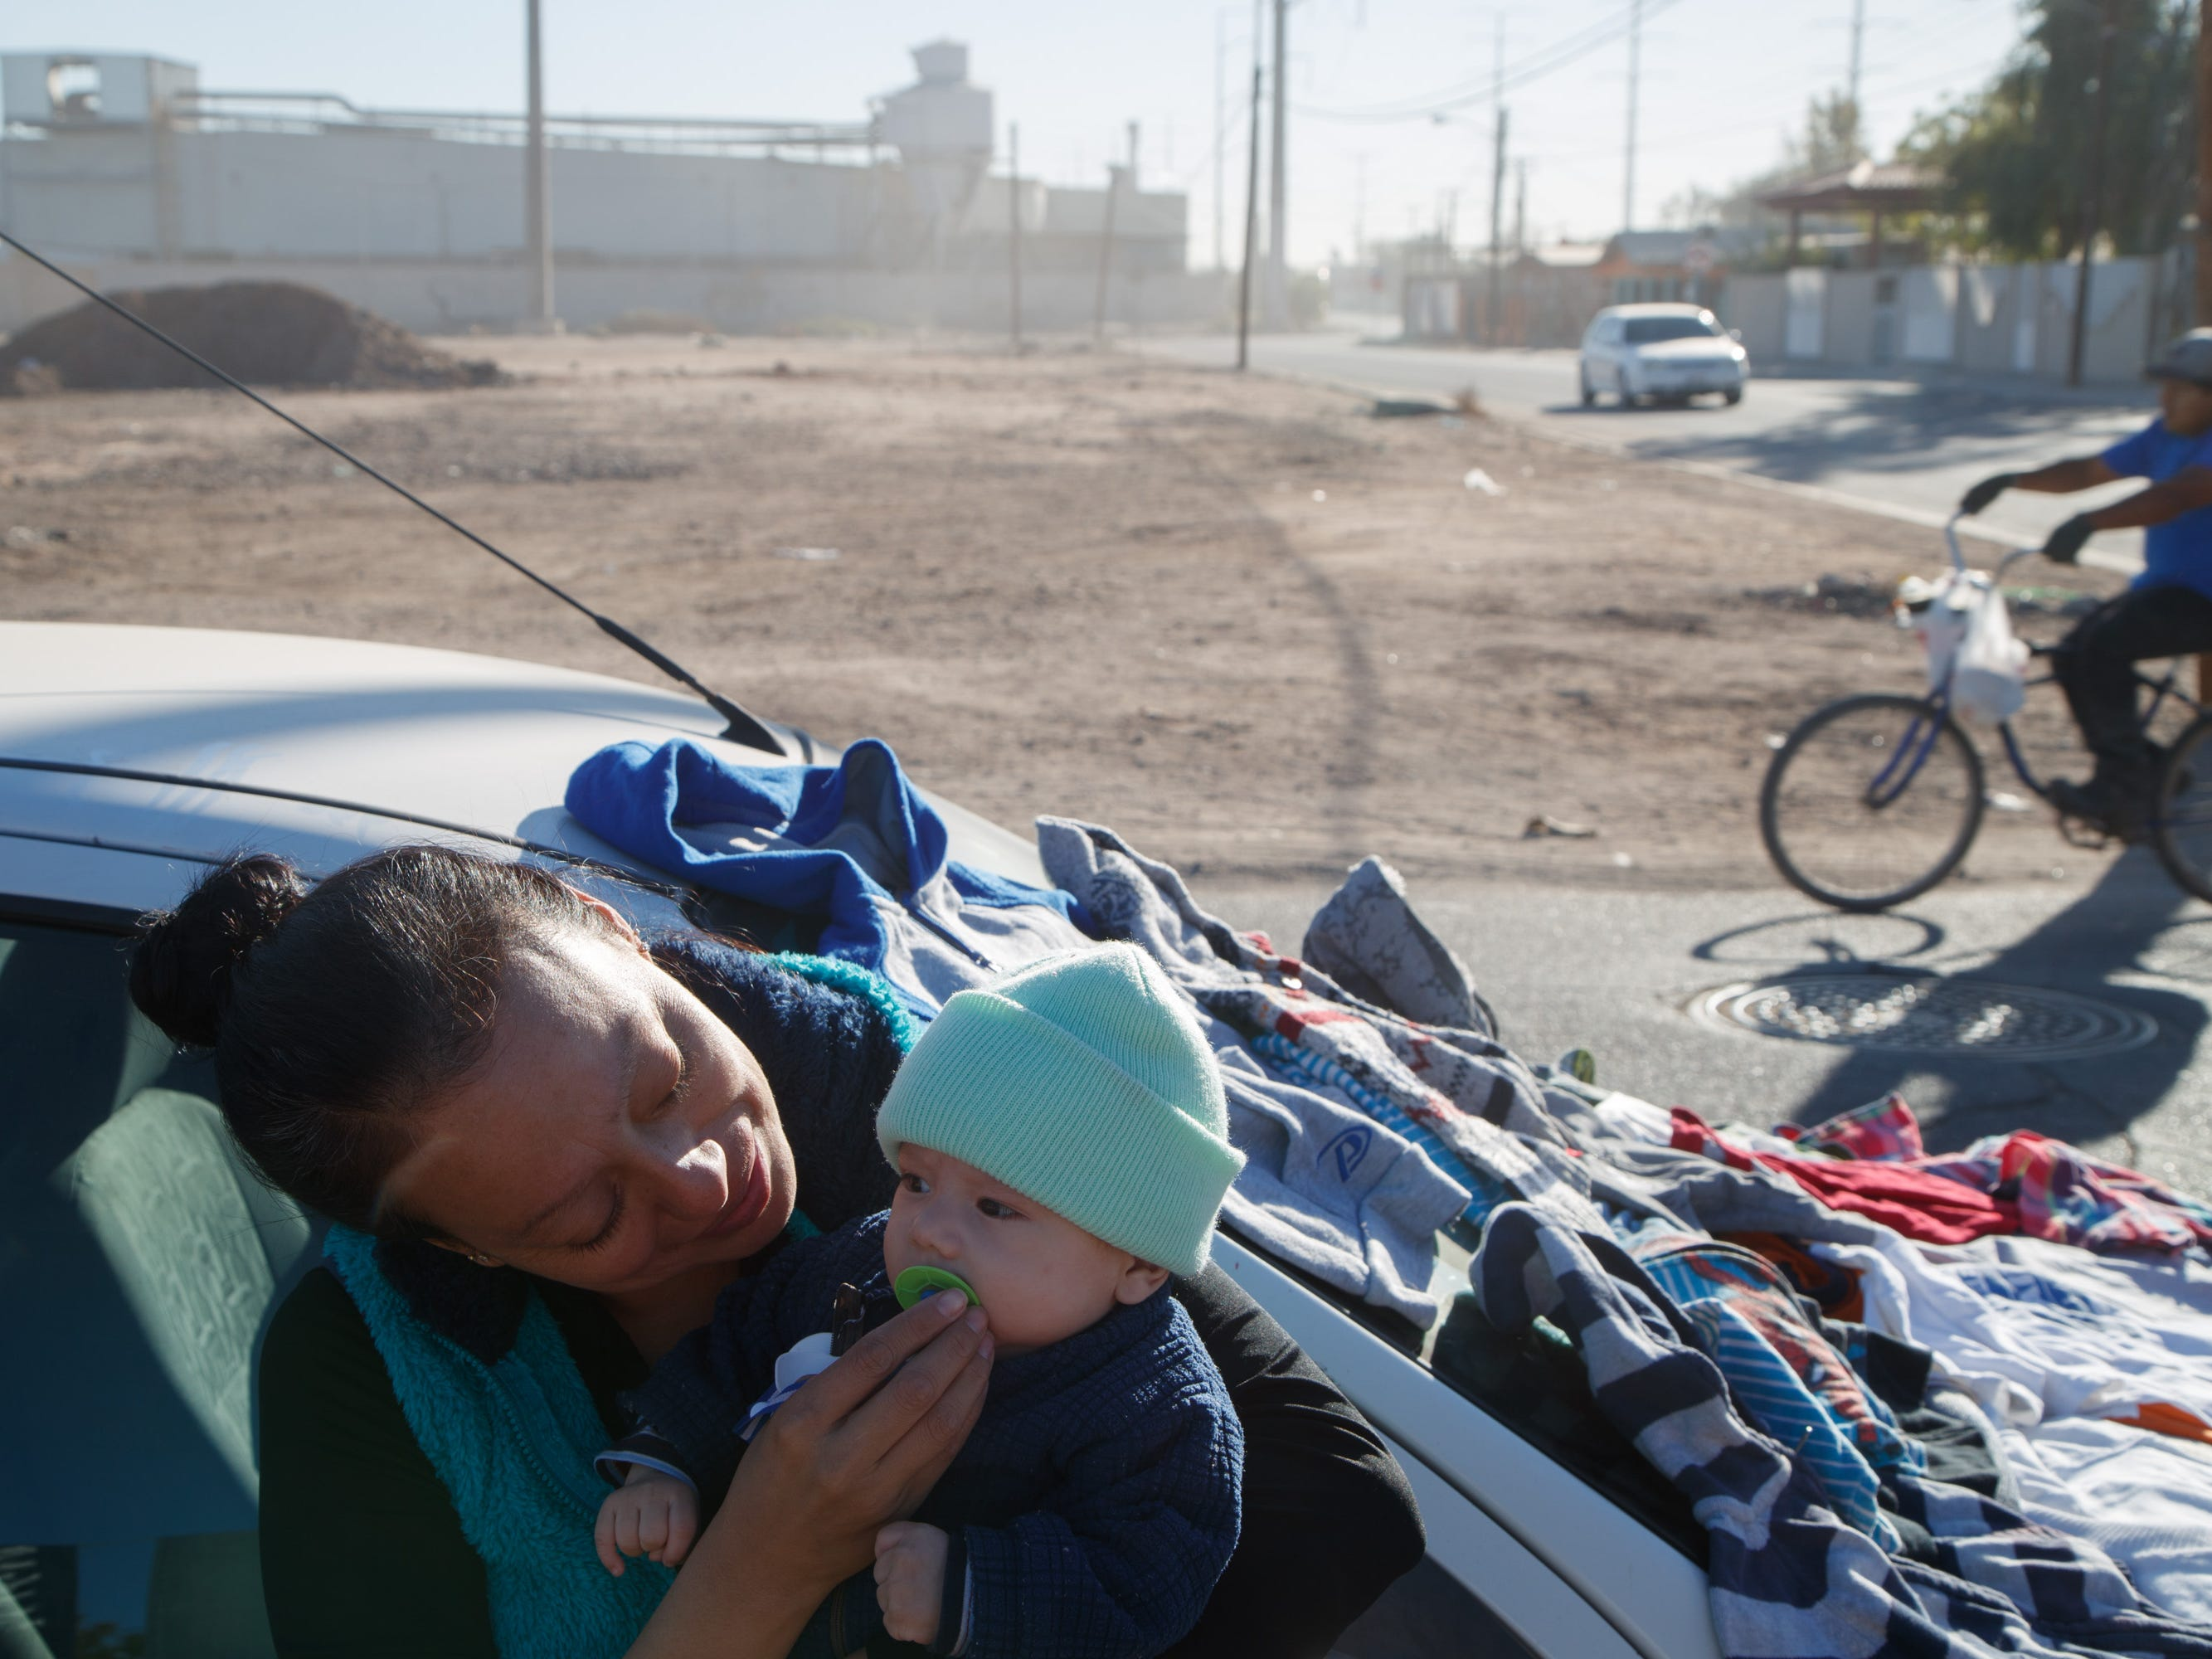 Yaneth Pérez comforts her 3-month-old son, Israel, while selling used clothing in Mexicali on Dec. 12, 2017.